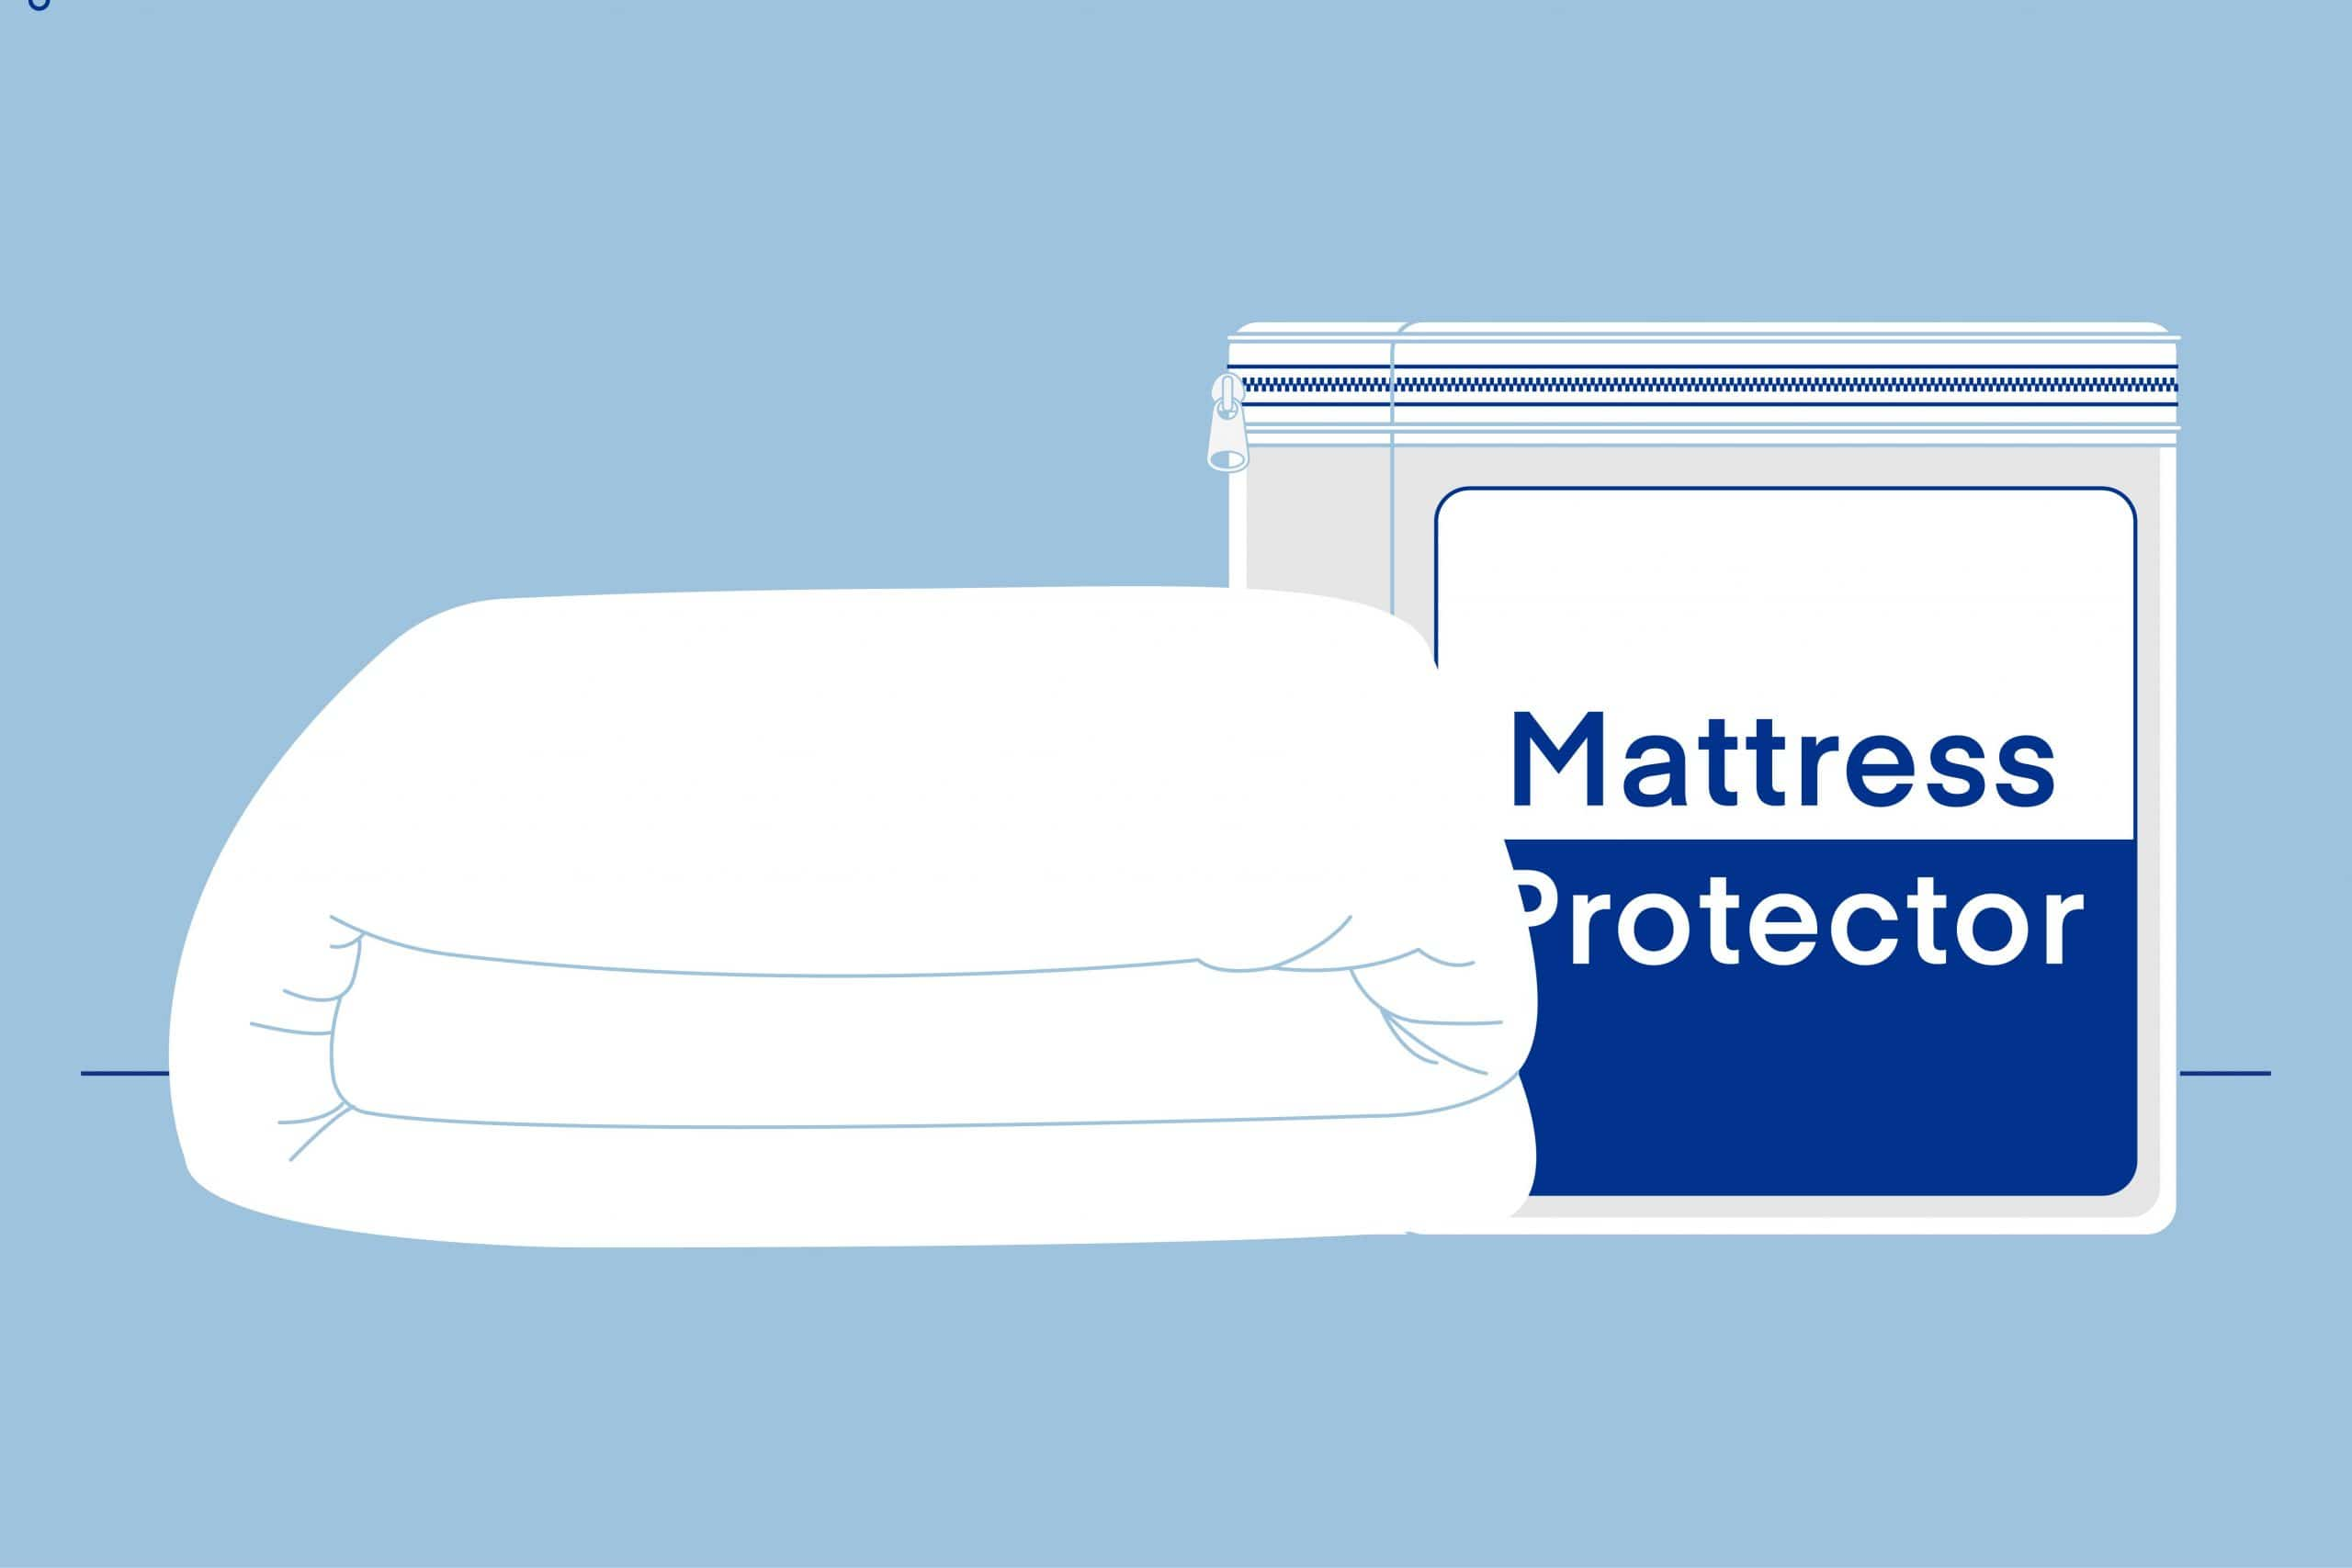 Mattress Protector Sizes and Dimensions Guide